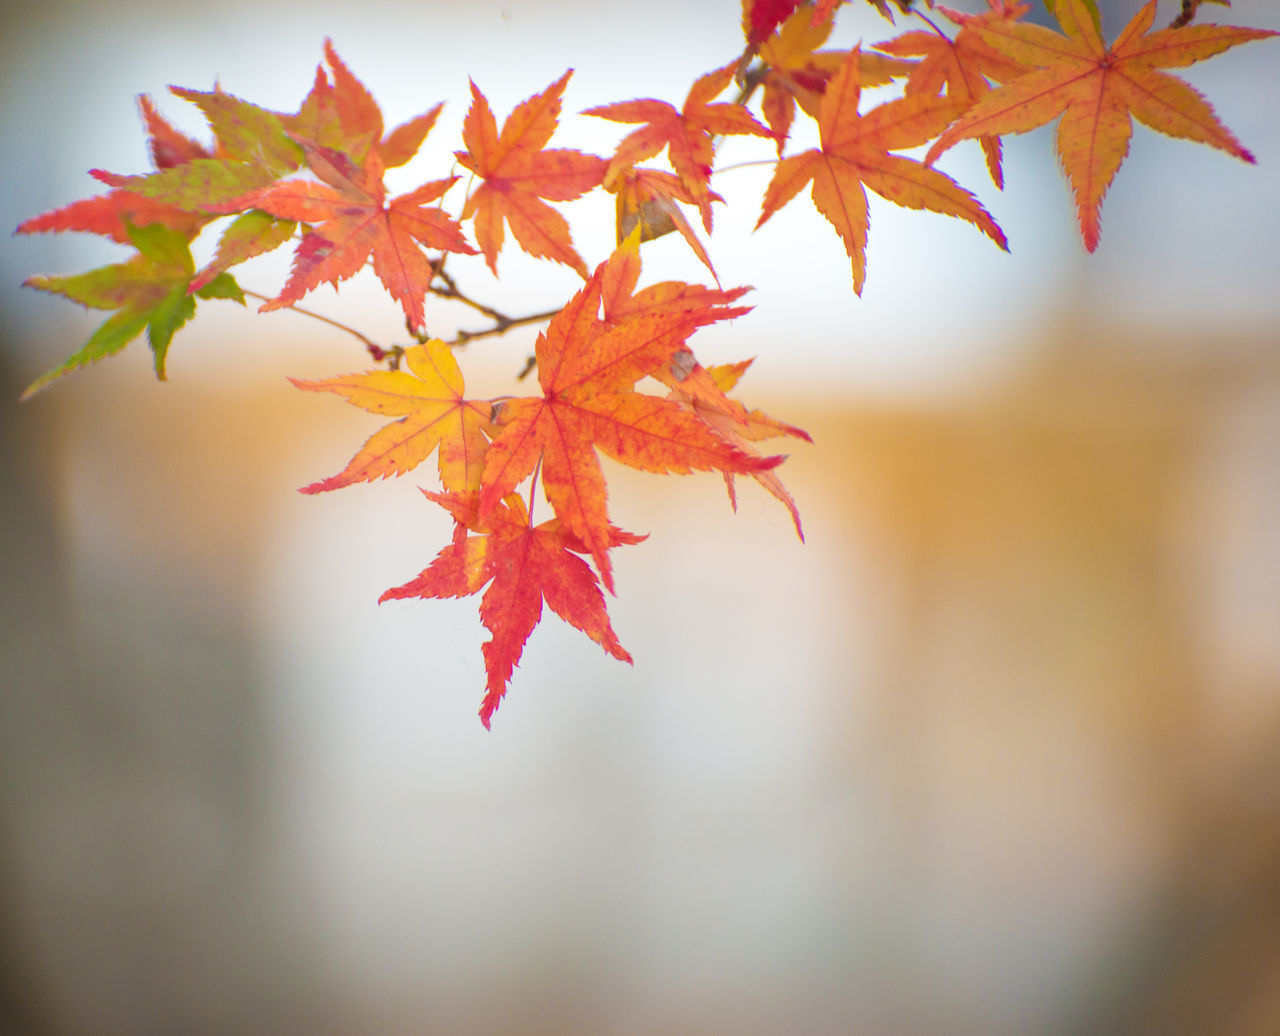 leaf, plant part, autumn, change, maple leaf, plant, close-up, focus on foreground, orange color, beauty in nature, red, nature, leaves, maple tree, no people, tree, day, selective focus, branch, outdoors, natural condition, autumn collection, fall